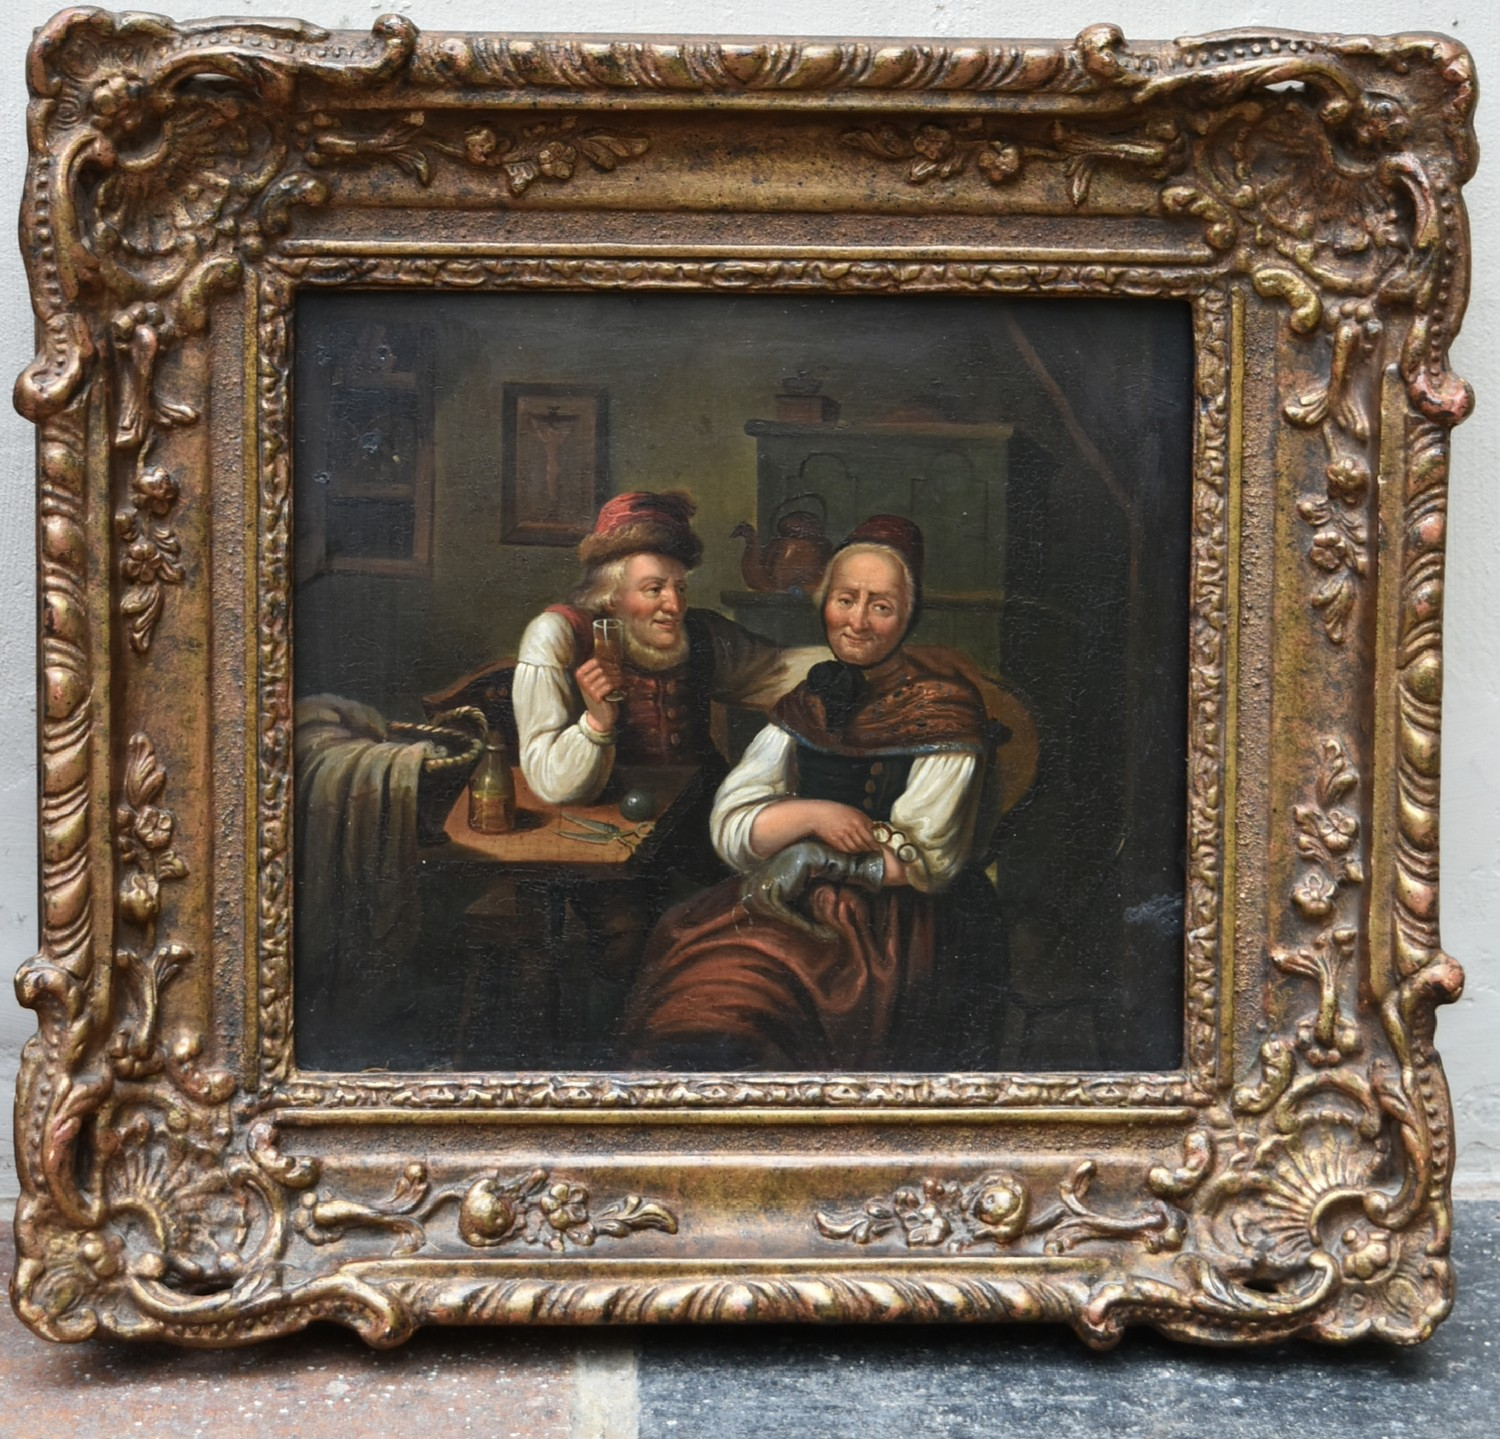 A 19th century oil on board in ornate gilt frame, an old couple seated together, unsigned. H.34 W. - Image 2 of 3